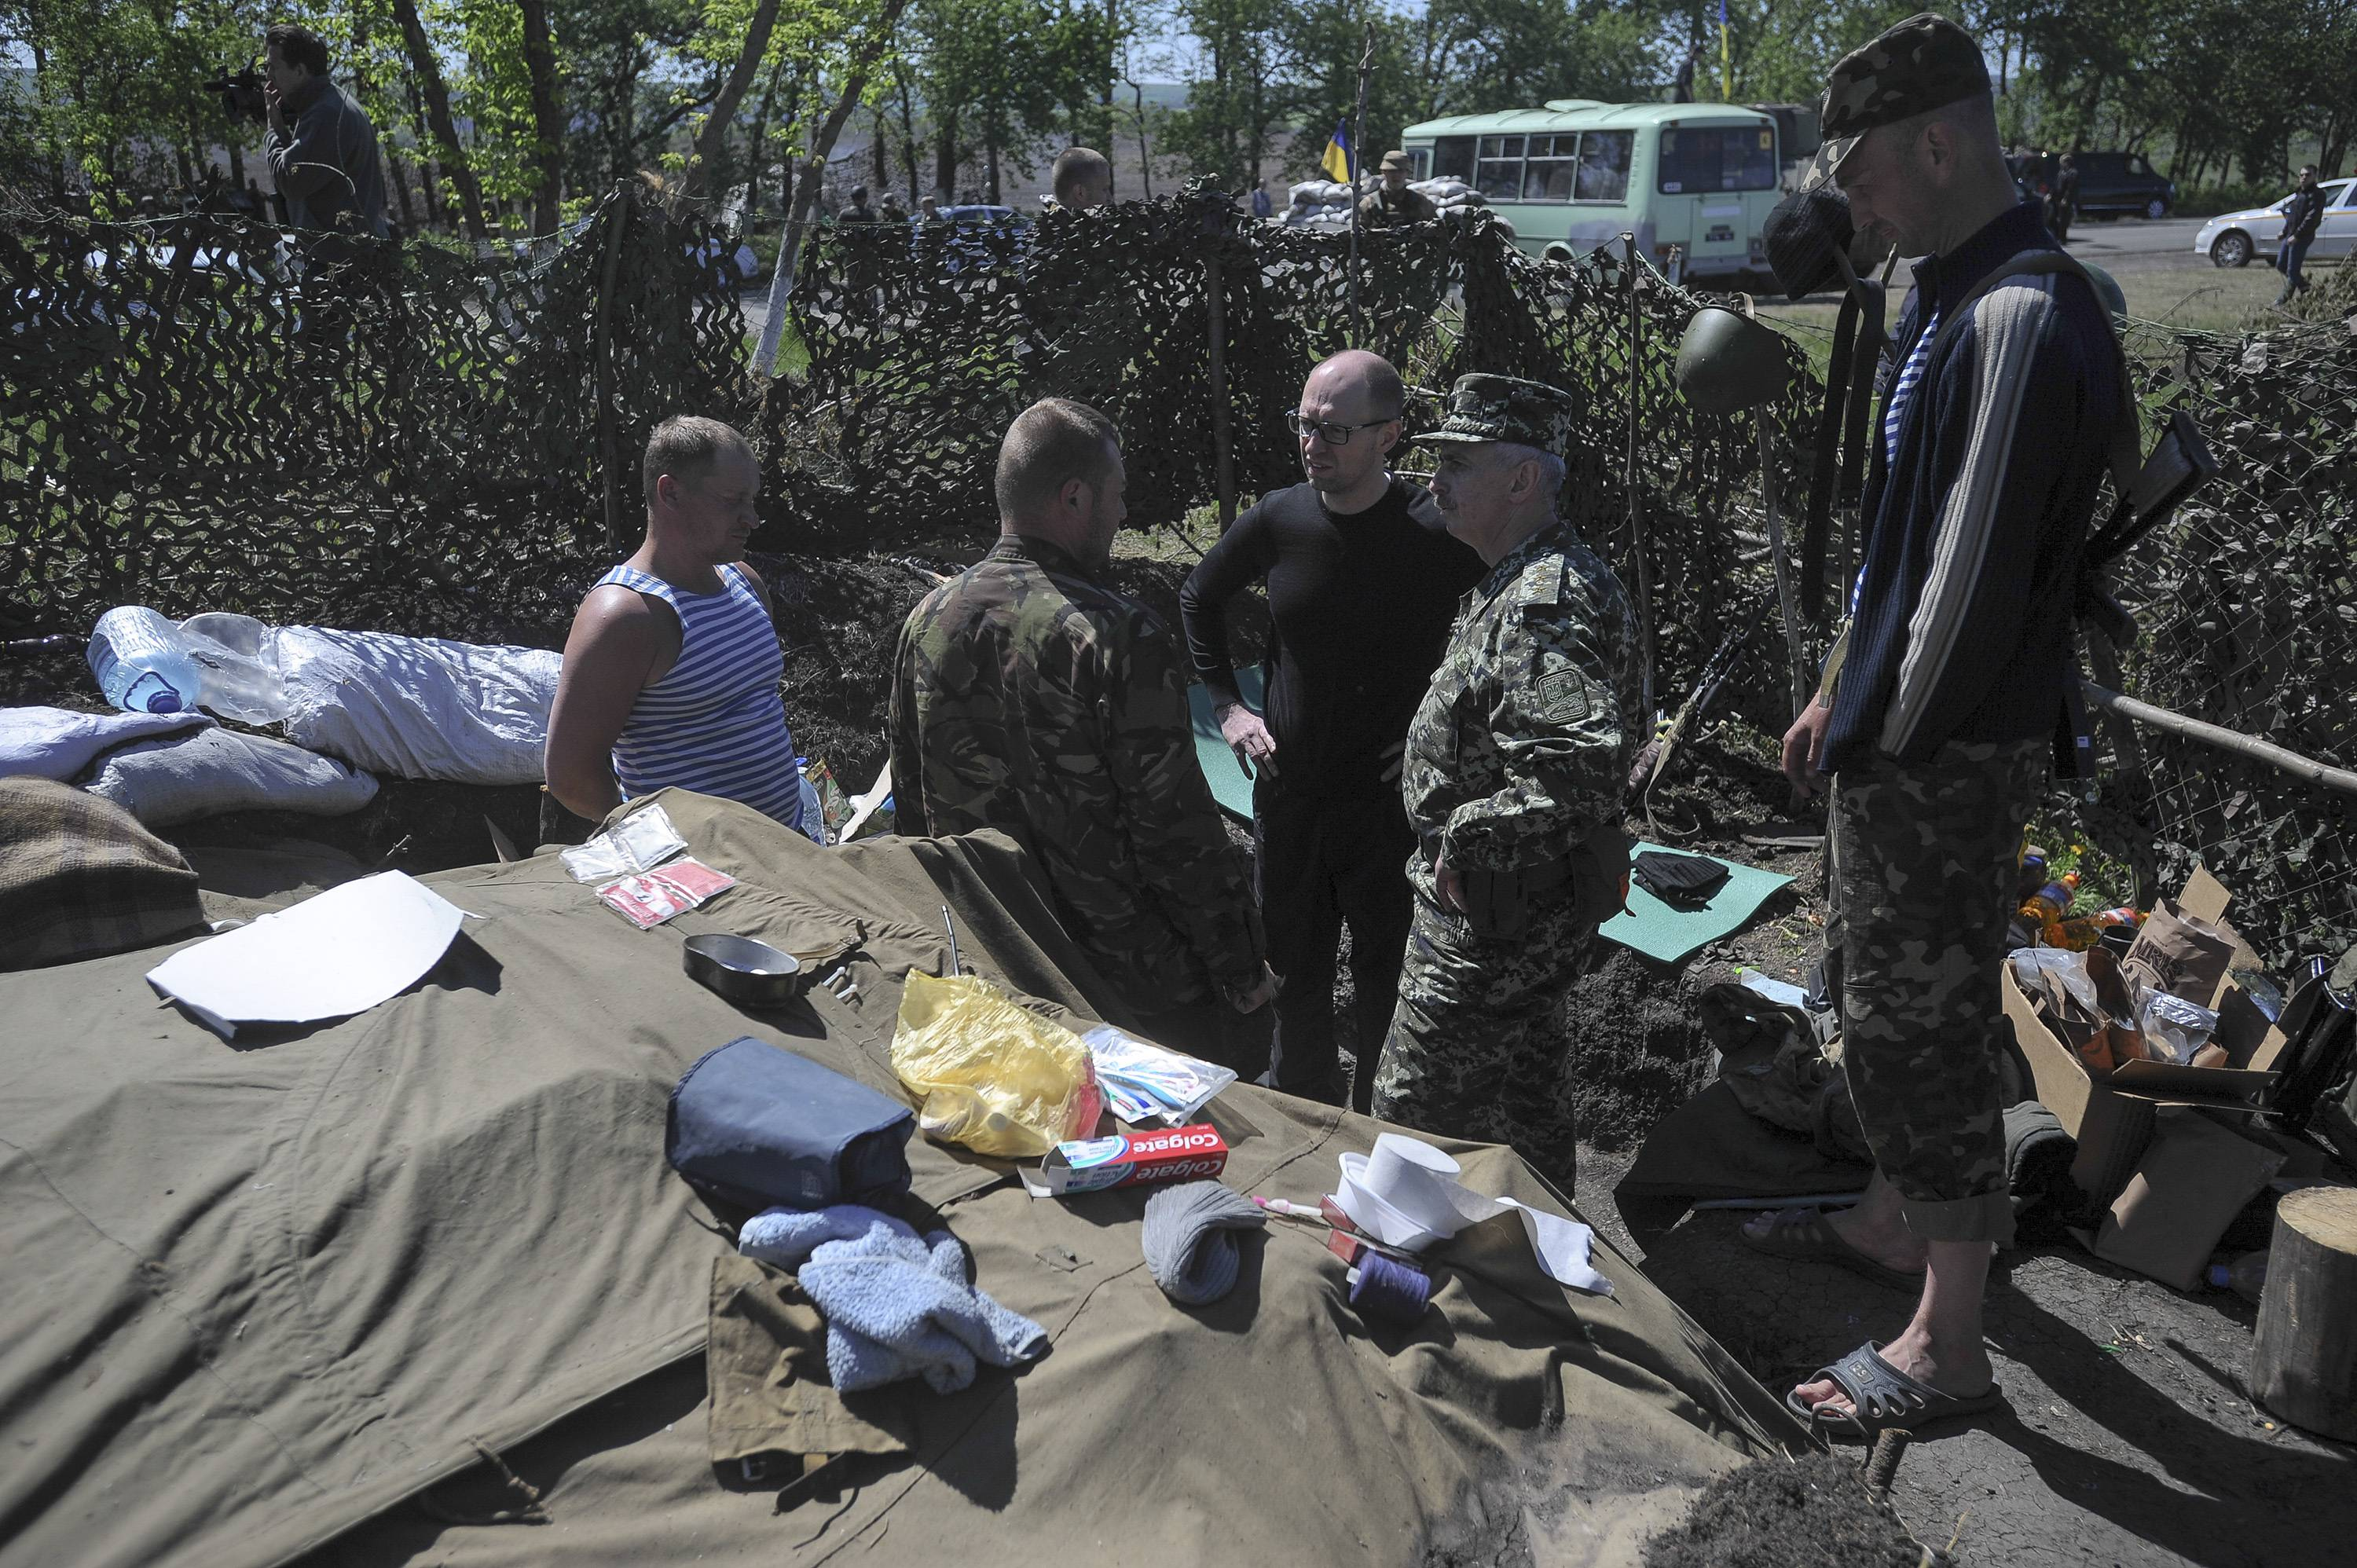 Ukrainian Prime Minister Arseniy Yatsenyuk, center, talks with Ukrainian soldiers Wednesday. Russian President Putin announced Russia has pulled back its troops from the Ukrainian border.